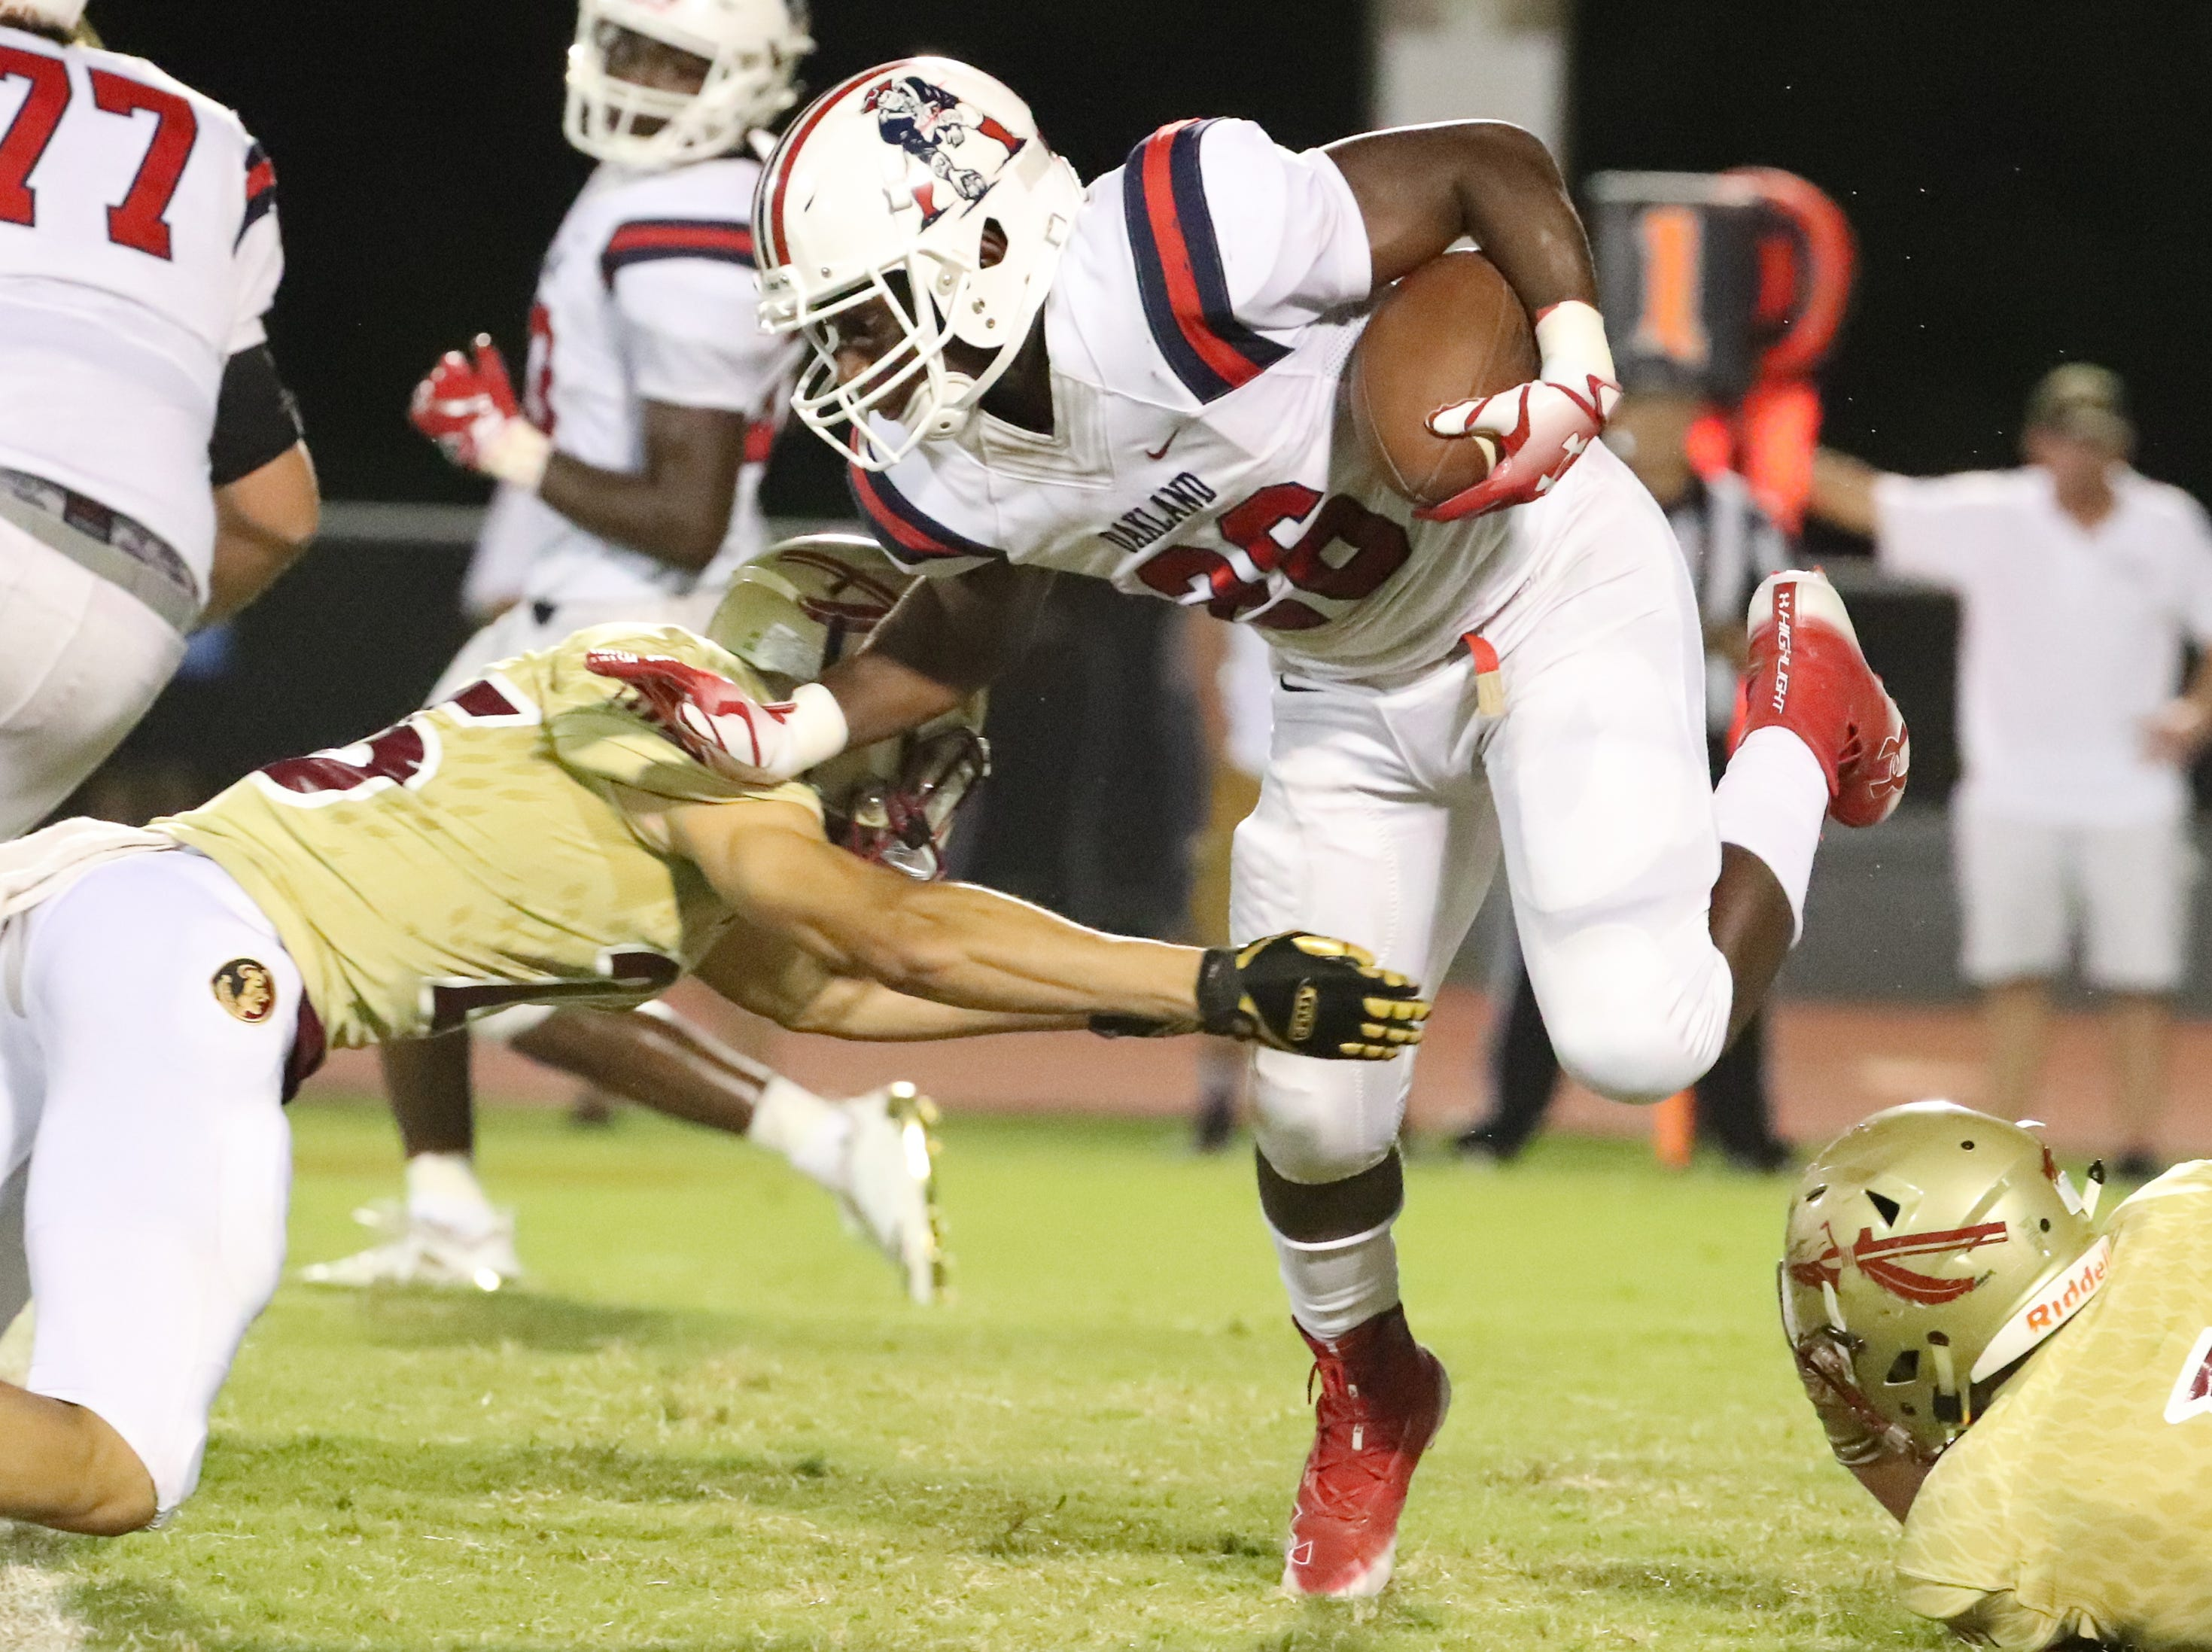 Oakland's Xavier Myers (26) runs the ball as Riverdale's CJ Johnson (25) moves in for a tackle at Riverdale during the Battle of the Boro on Friday, Sept. 14, 2018.